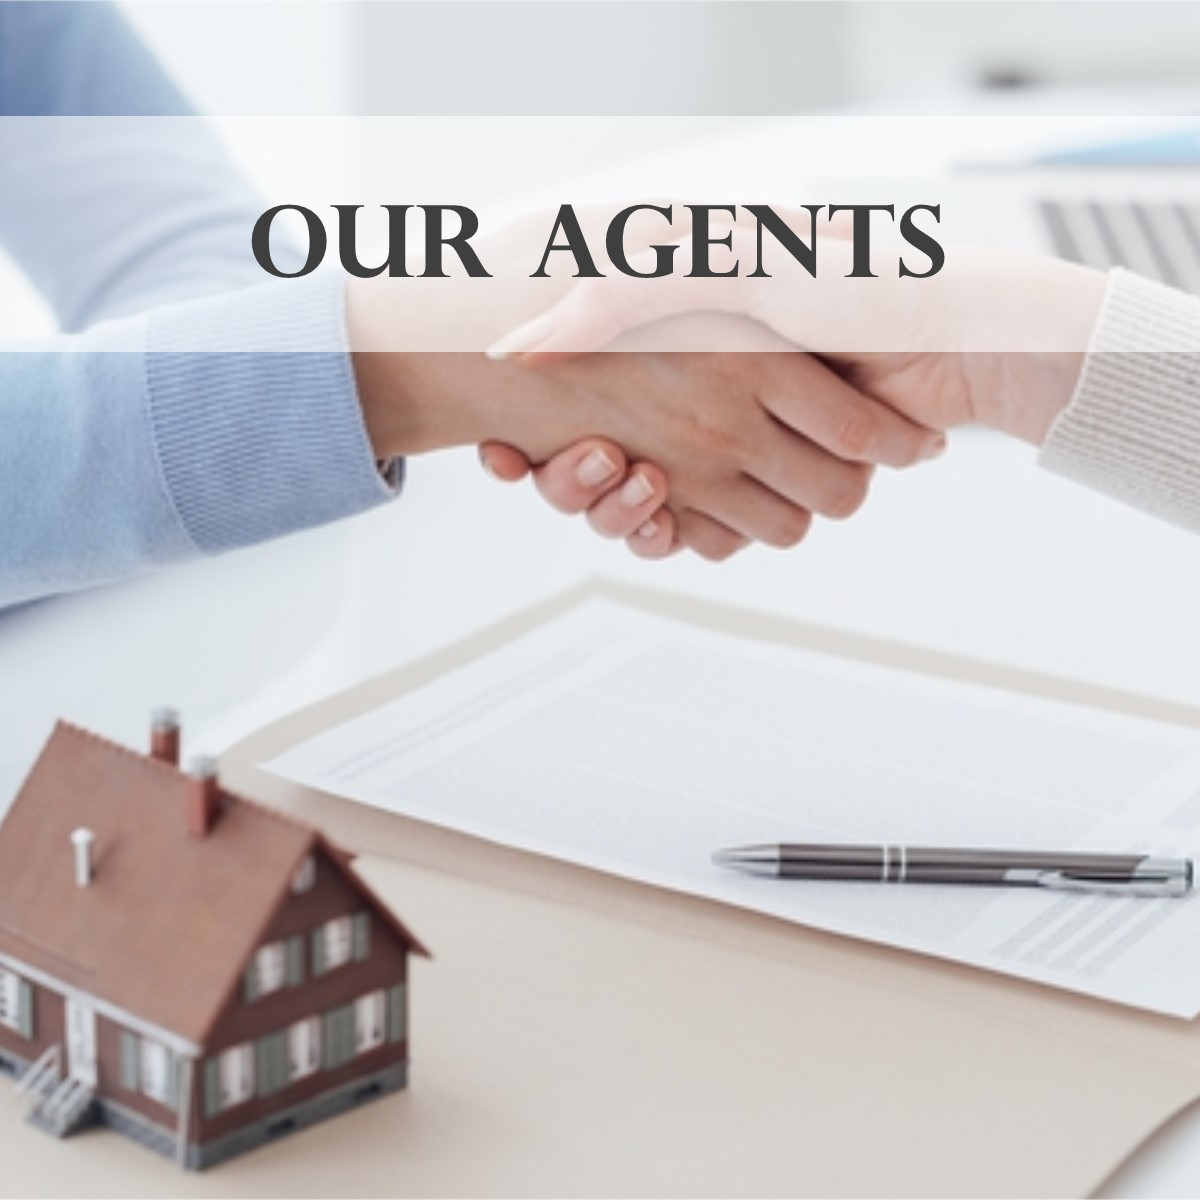 Meet Our Real Estate Agents